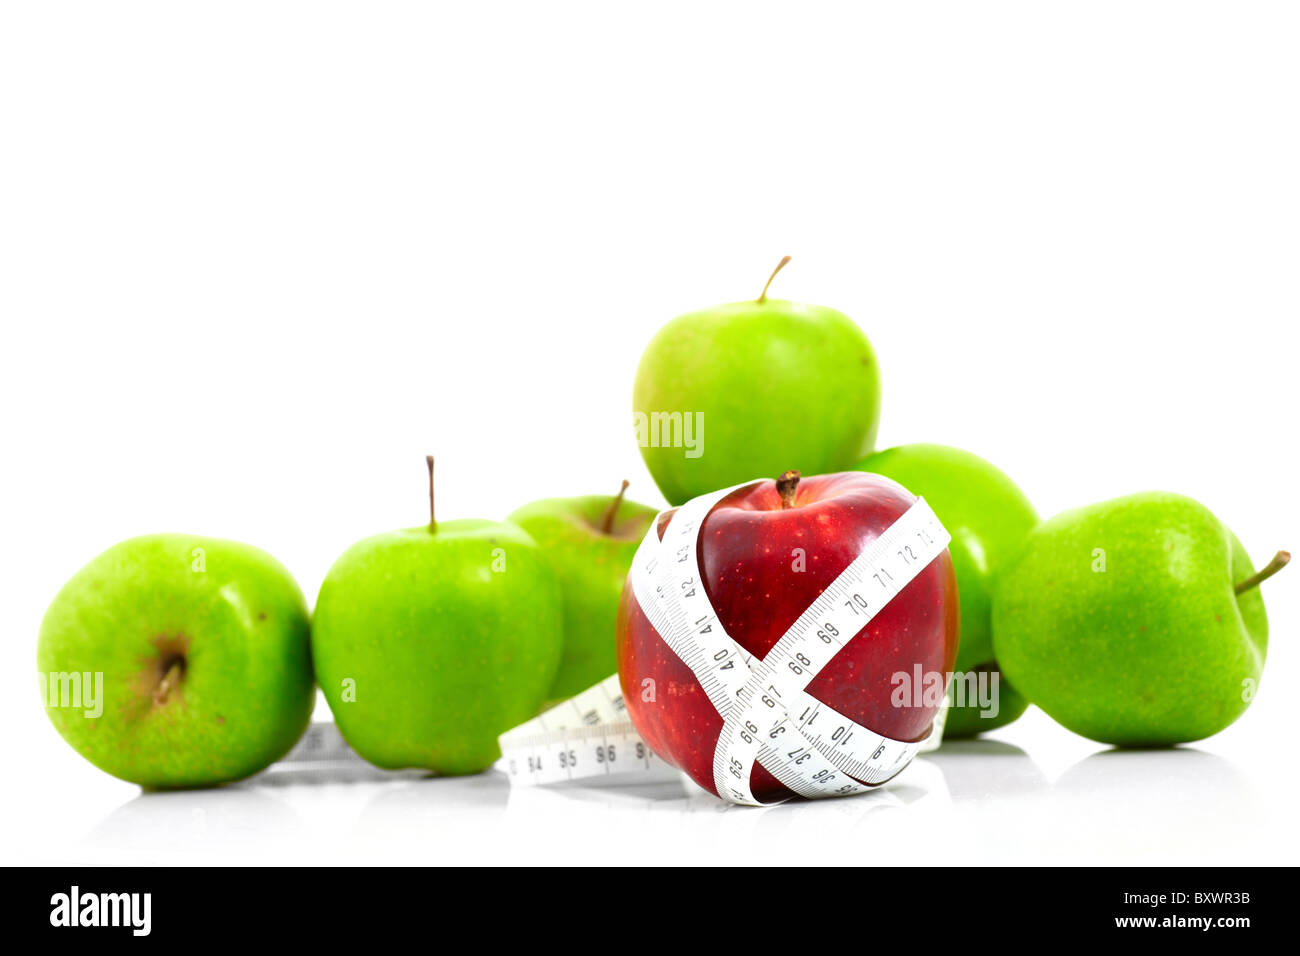 apples measured the meter, sports apples - Stock Image